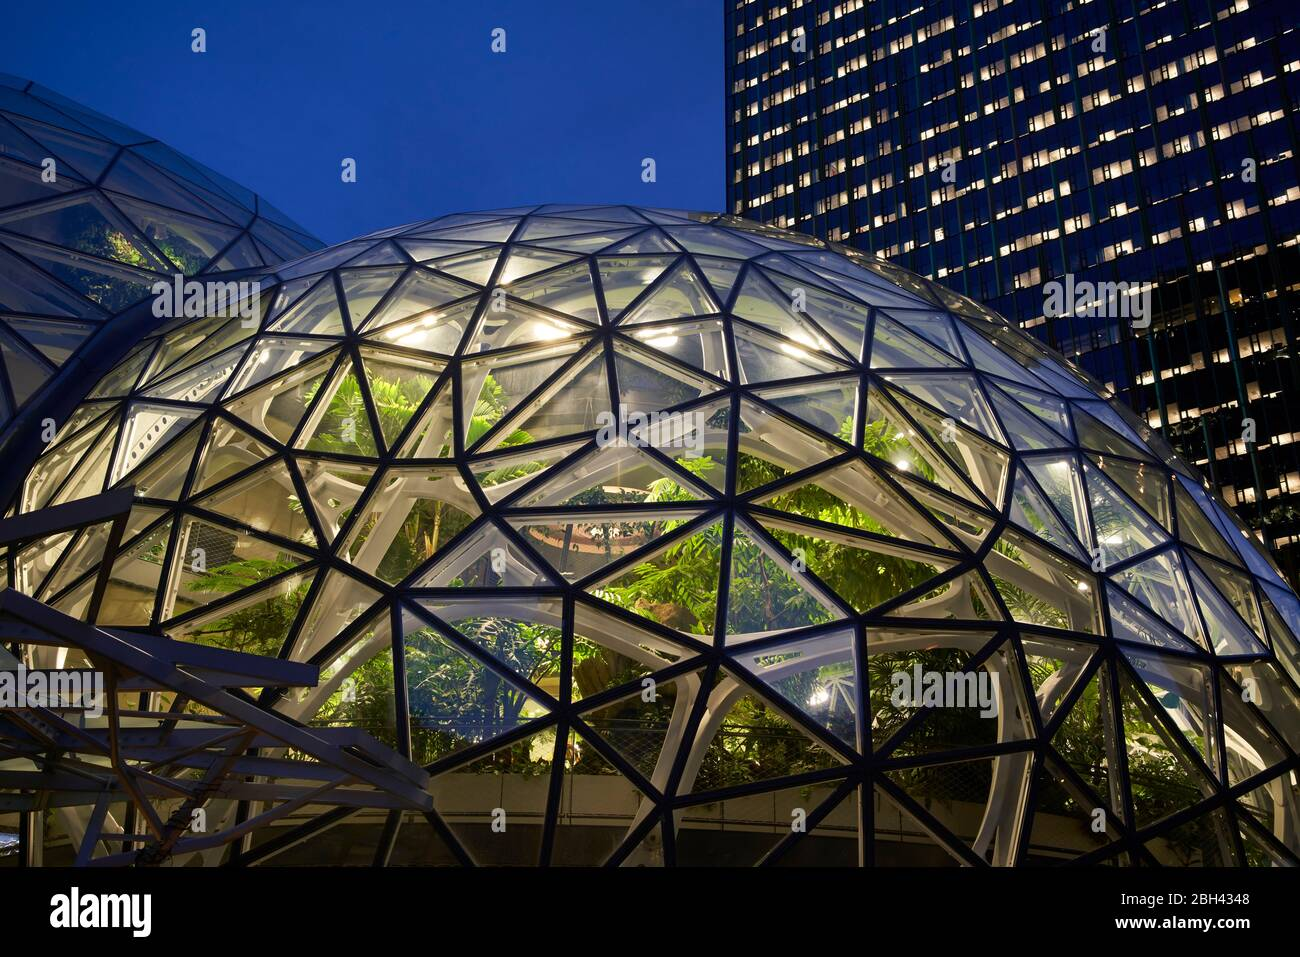 Evening light at the Spheres at Amazon's World Headquarters in Seattle, WA. Stock Photo